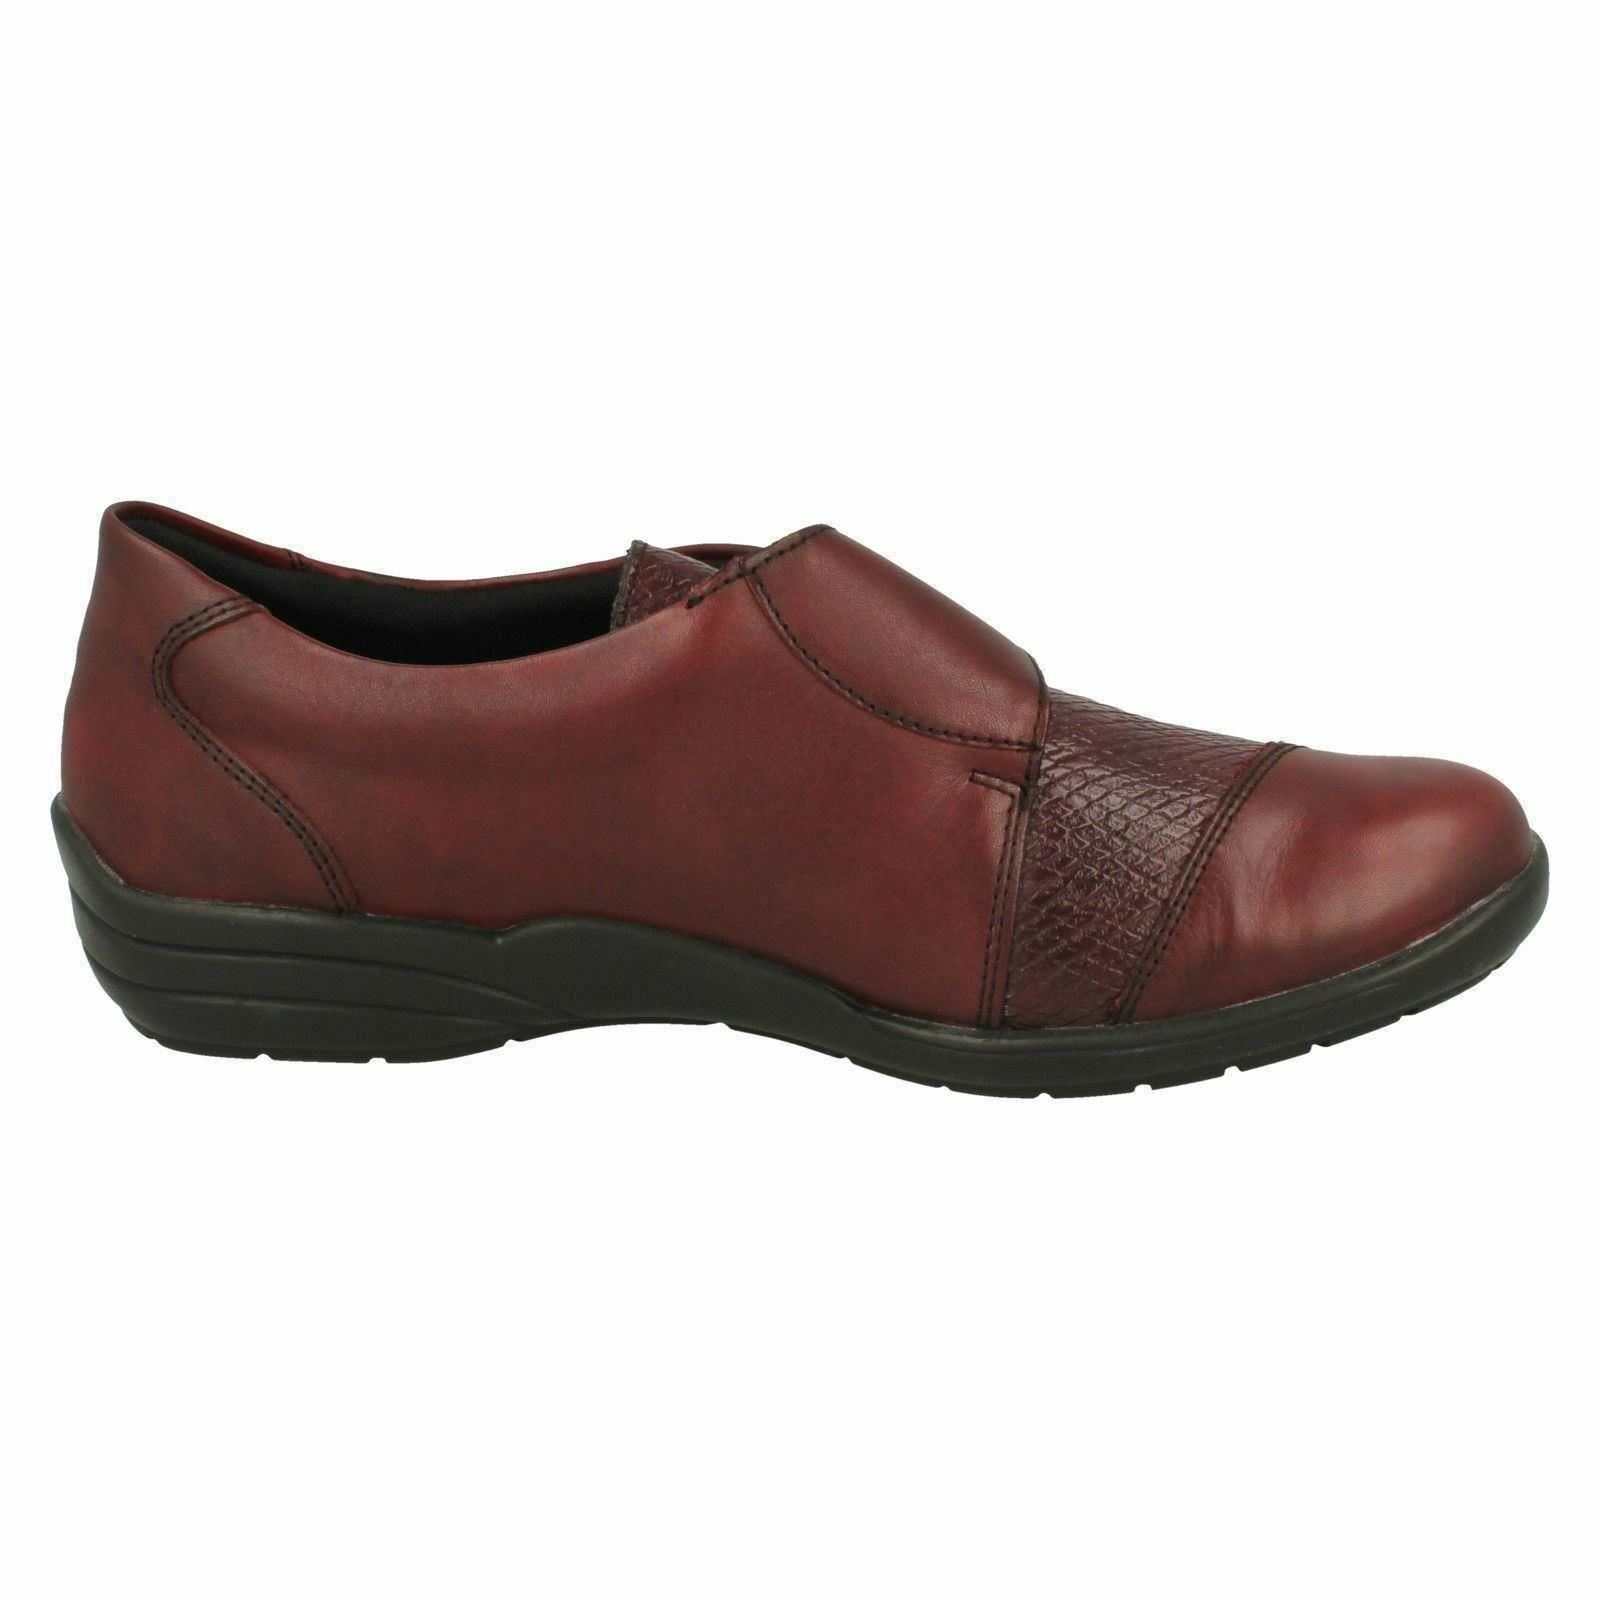 women Remonte R7628 pelle Rossa shoes shoes shoes Basse Casual 0ae409